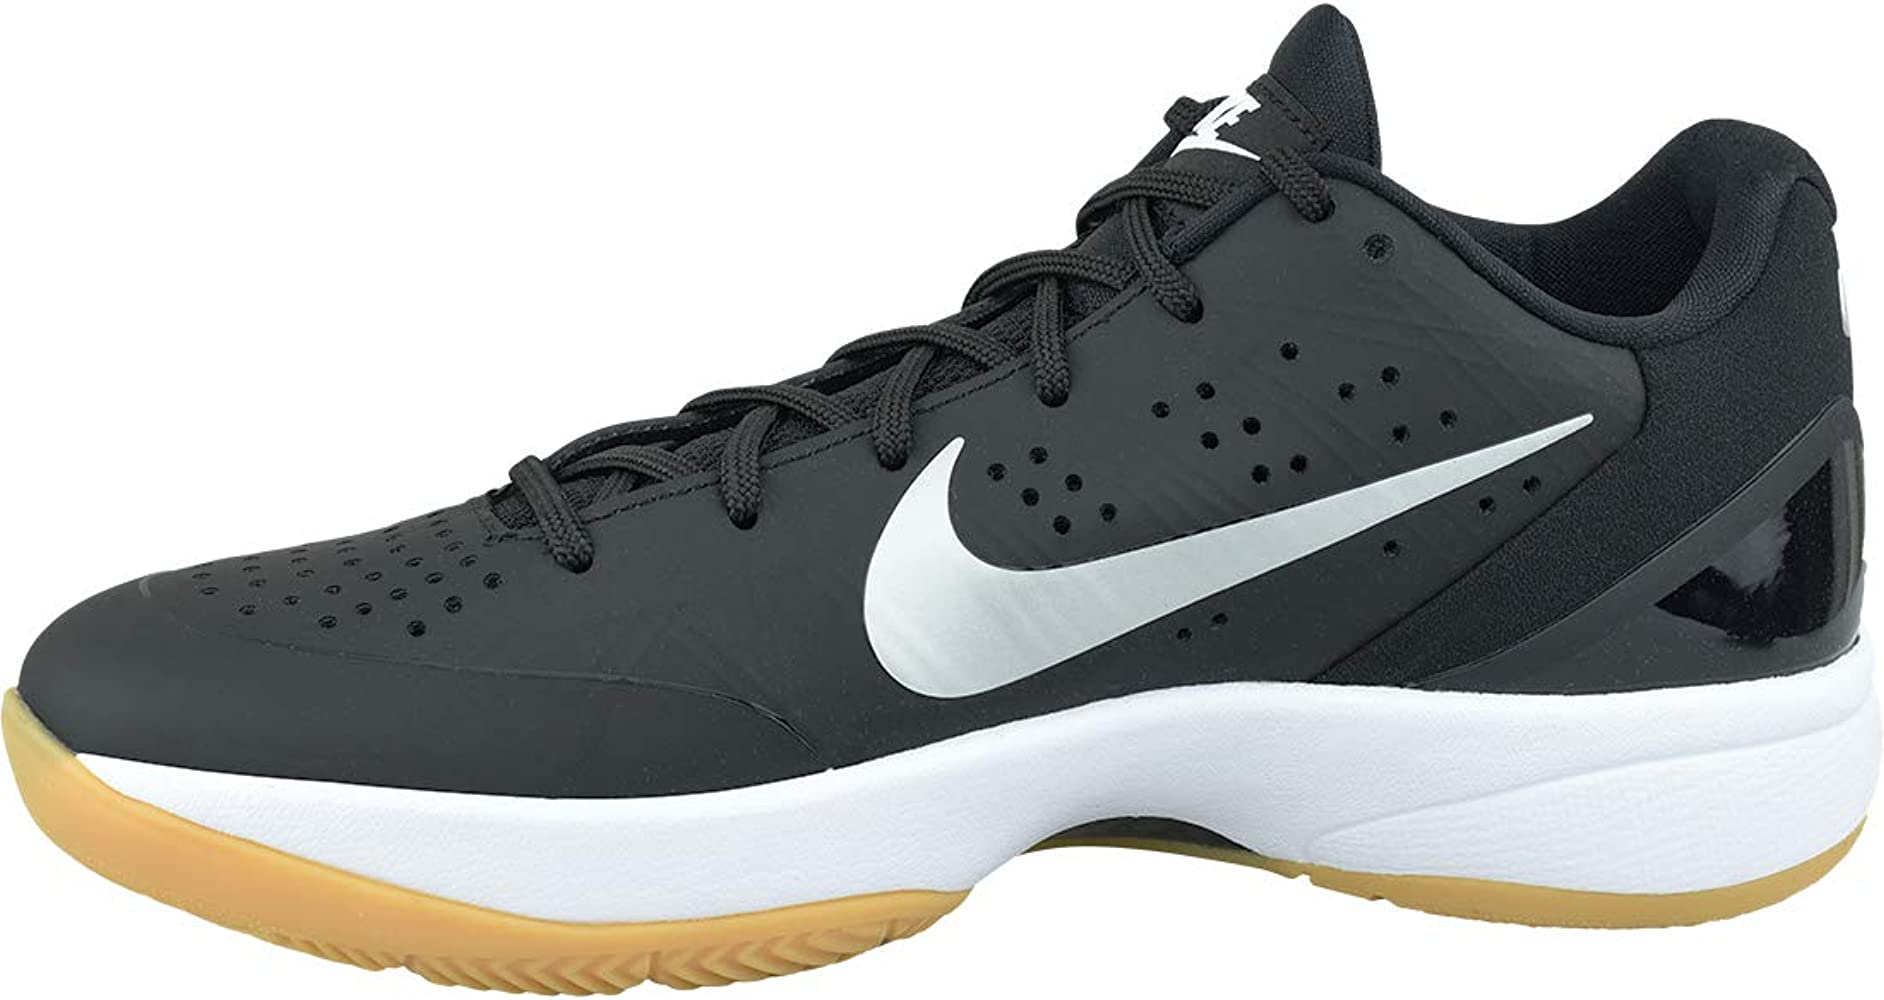 Hyperattack Nike Chaussures